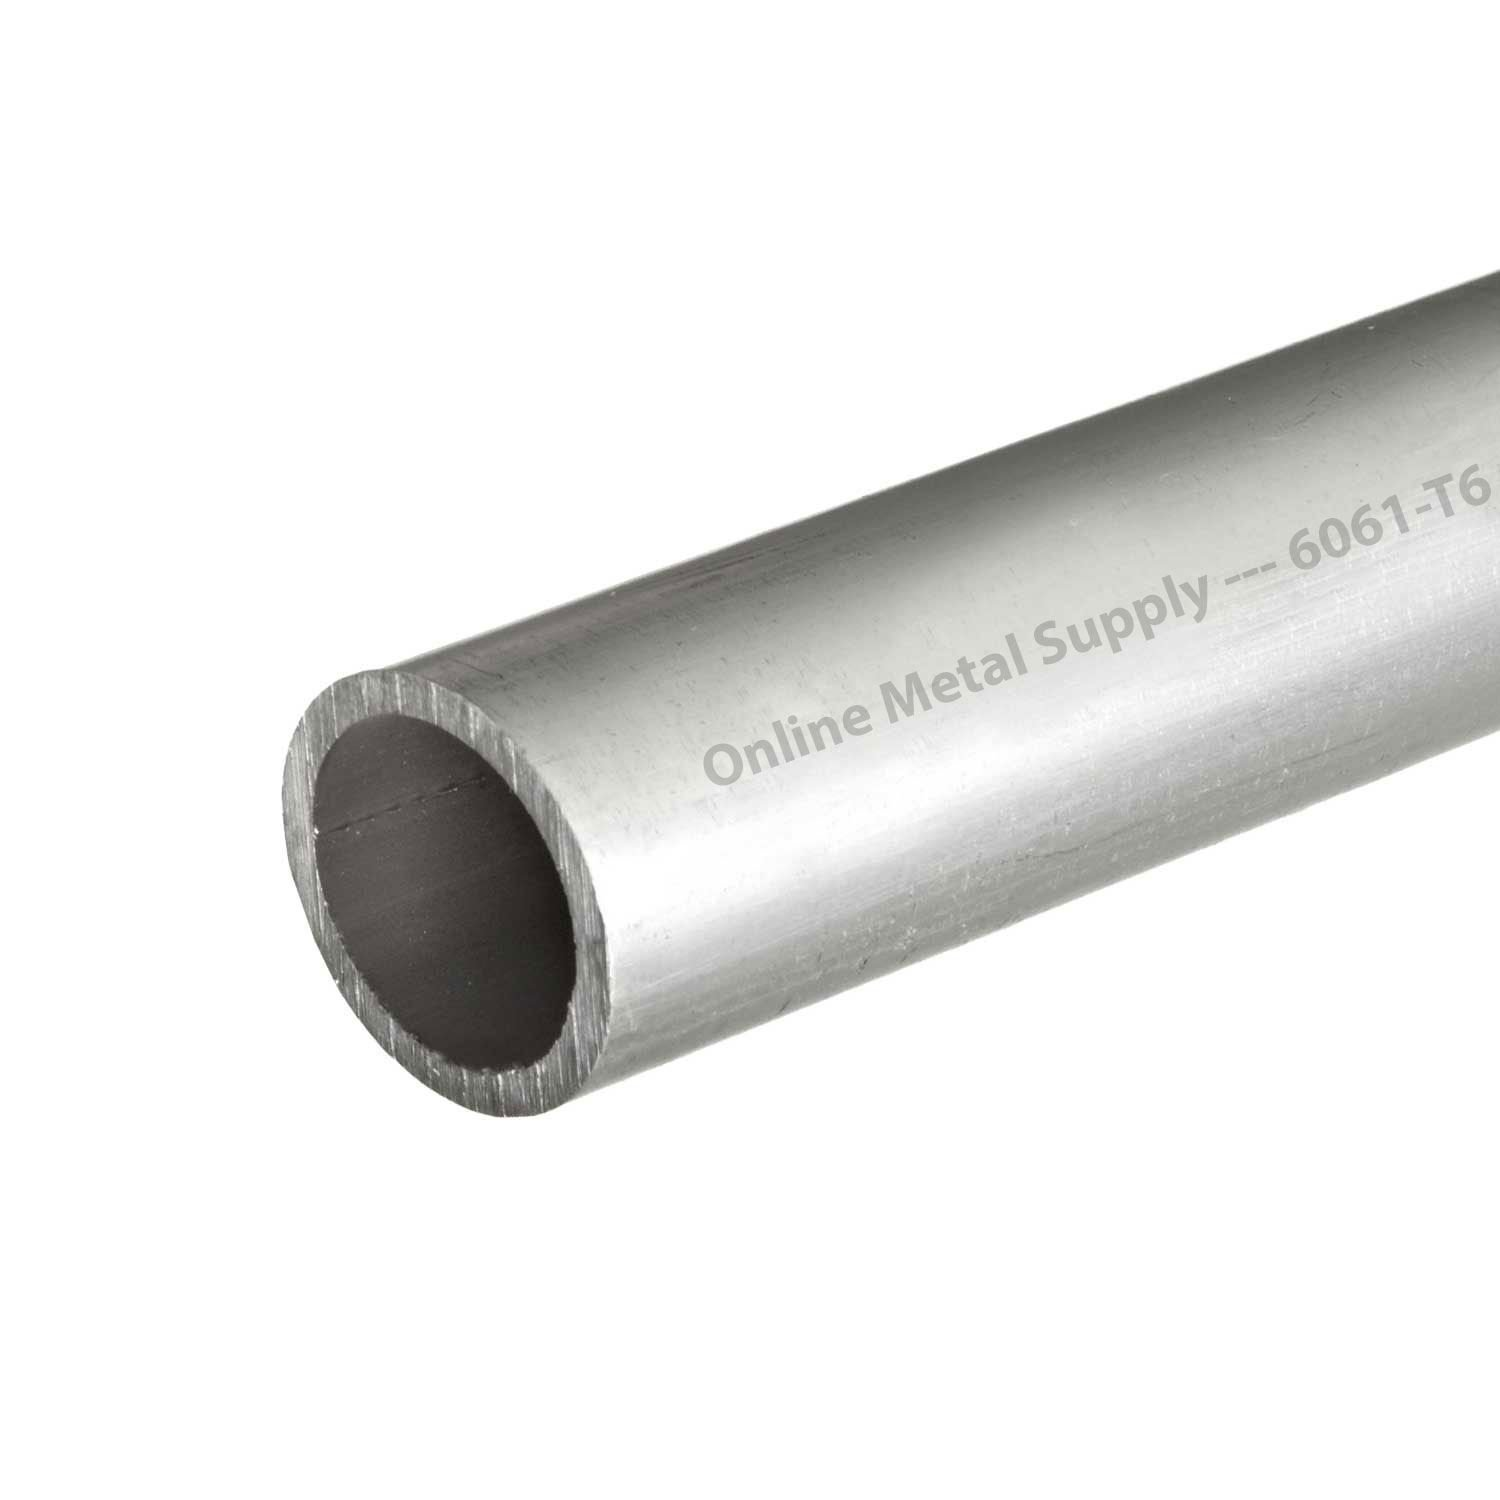 Online Metal Supply 6061-T6 Aluminum Round Tube 2-1/2'' OD x 3/16'' Wall x 36''